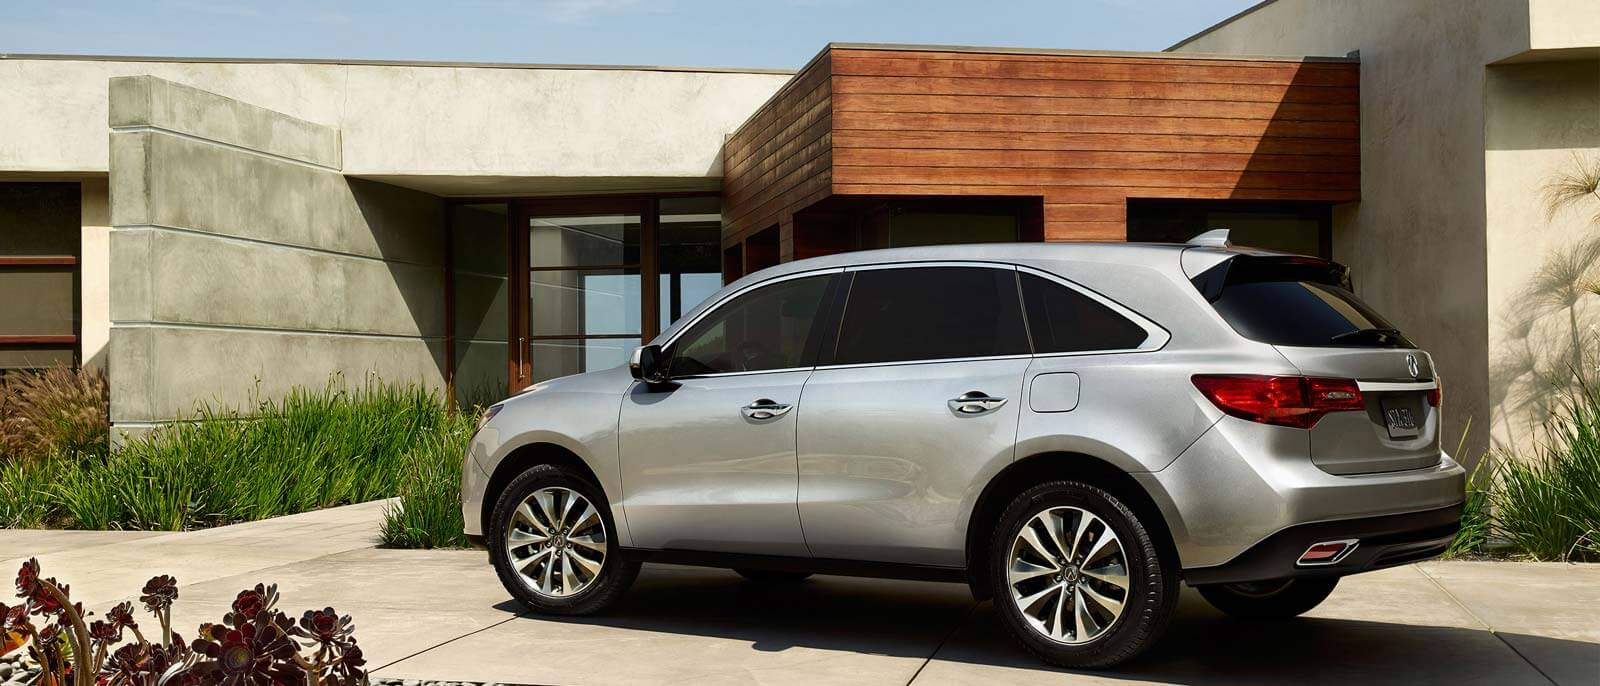 2016 Acura MDX profile view